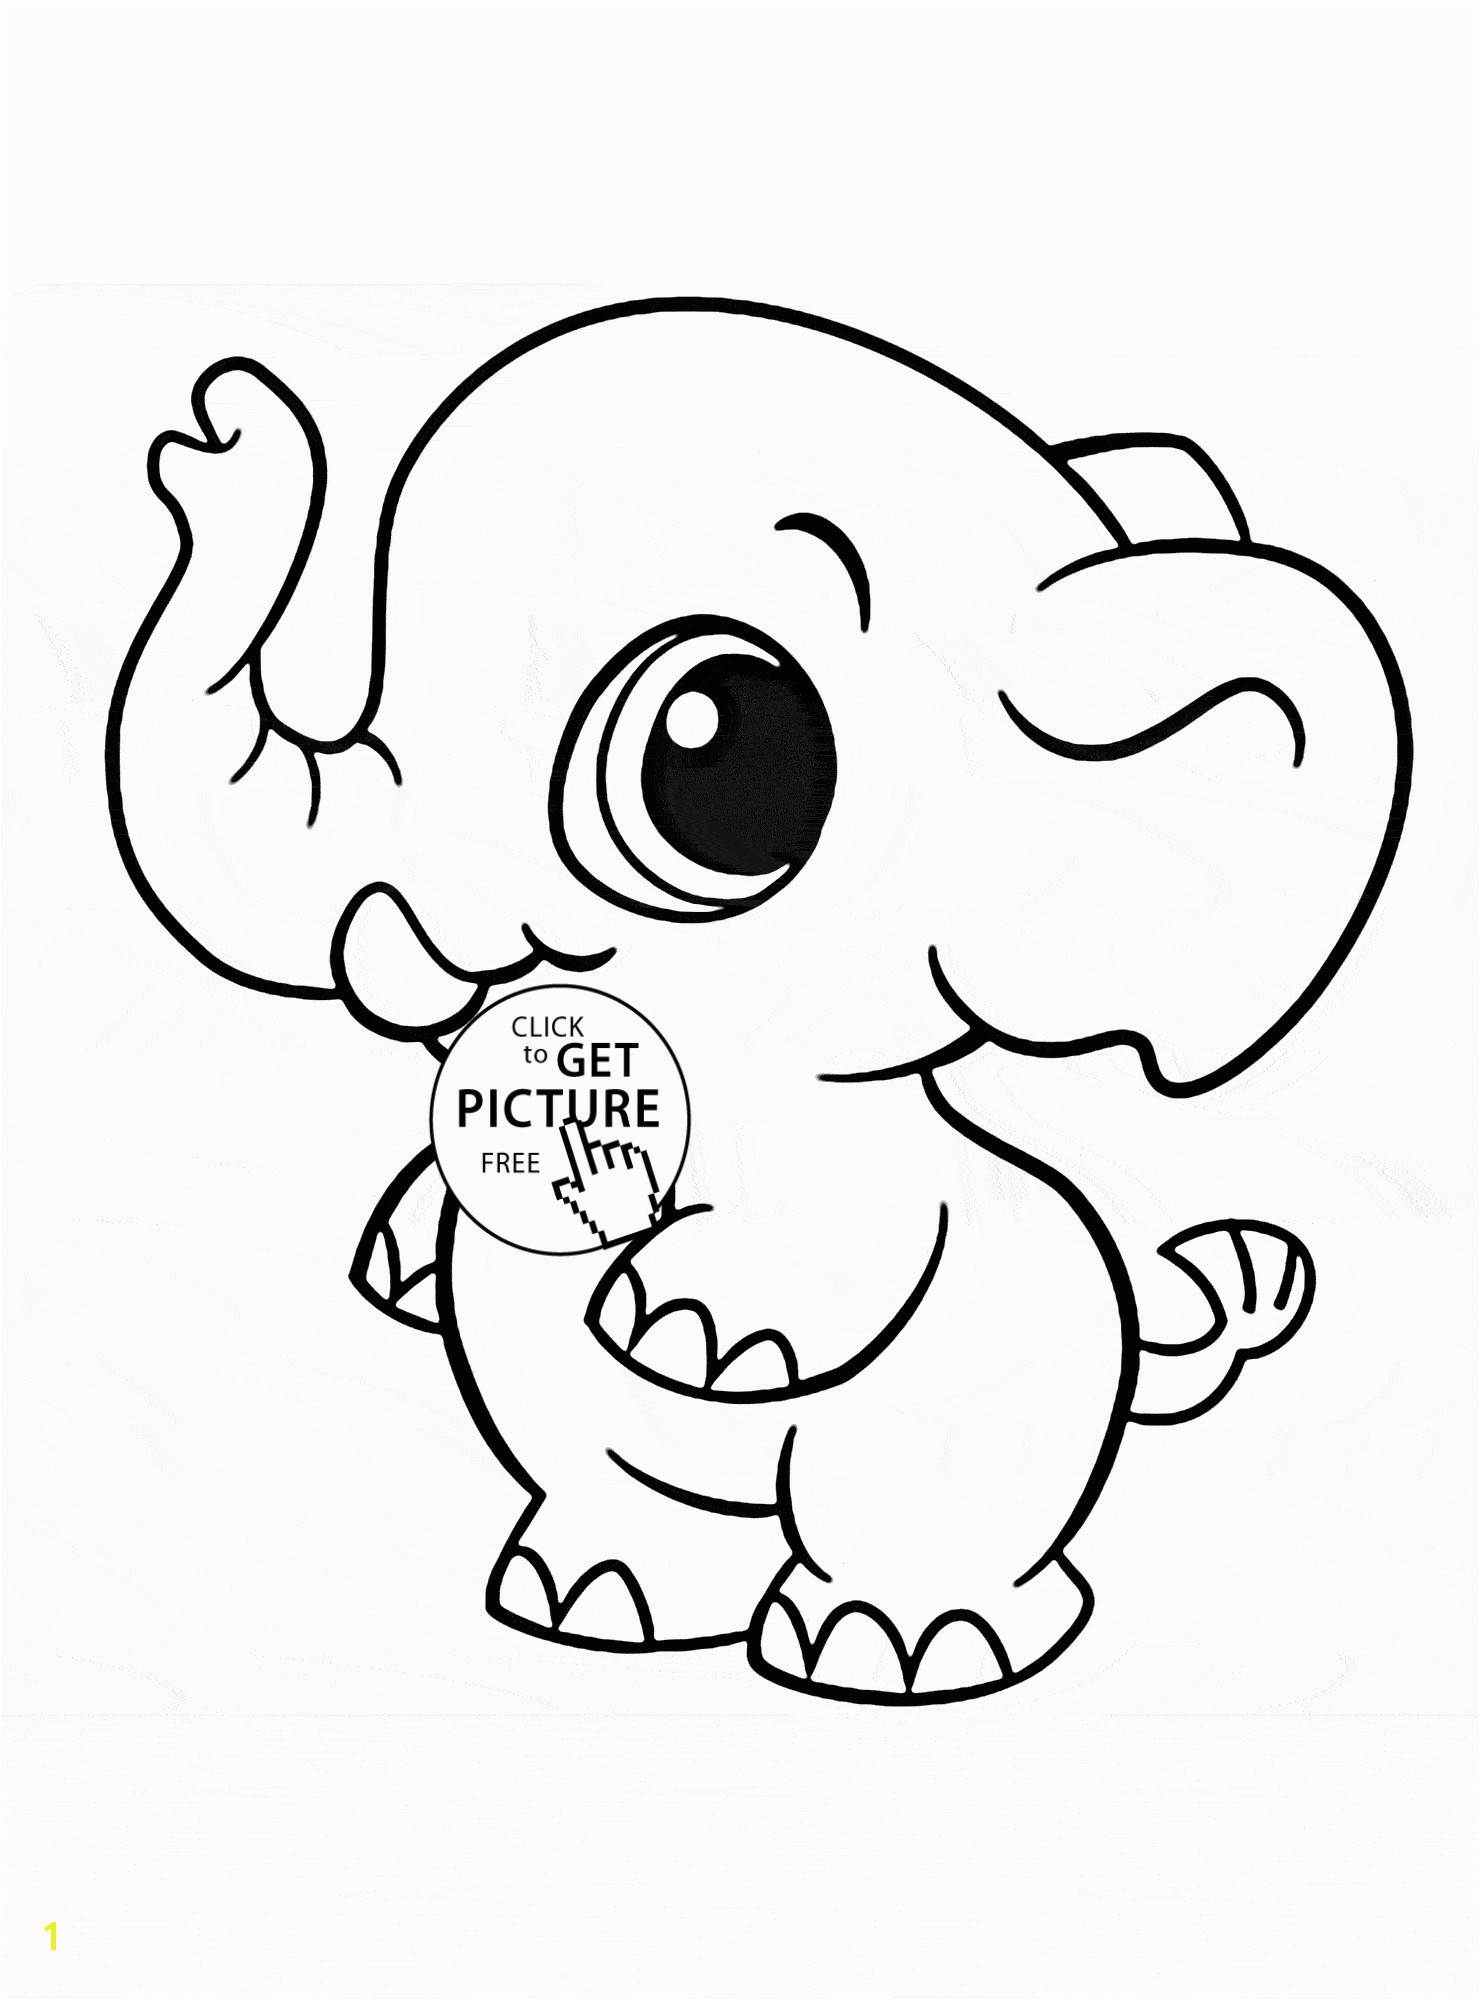 Cute Baby Animals Coloring Pages Cute Baby Animal Coloring Pages Fresh Media Cache Ec0 Pinimg